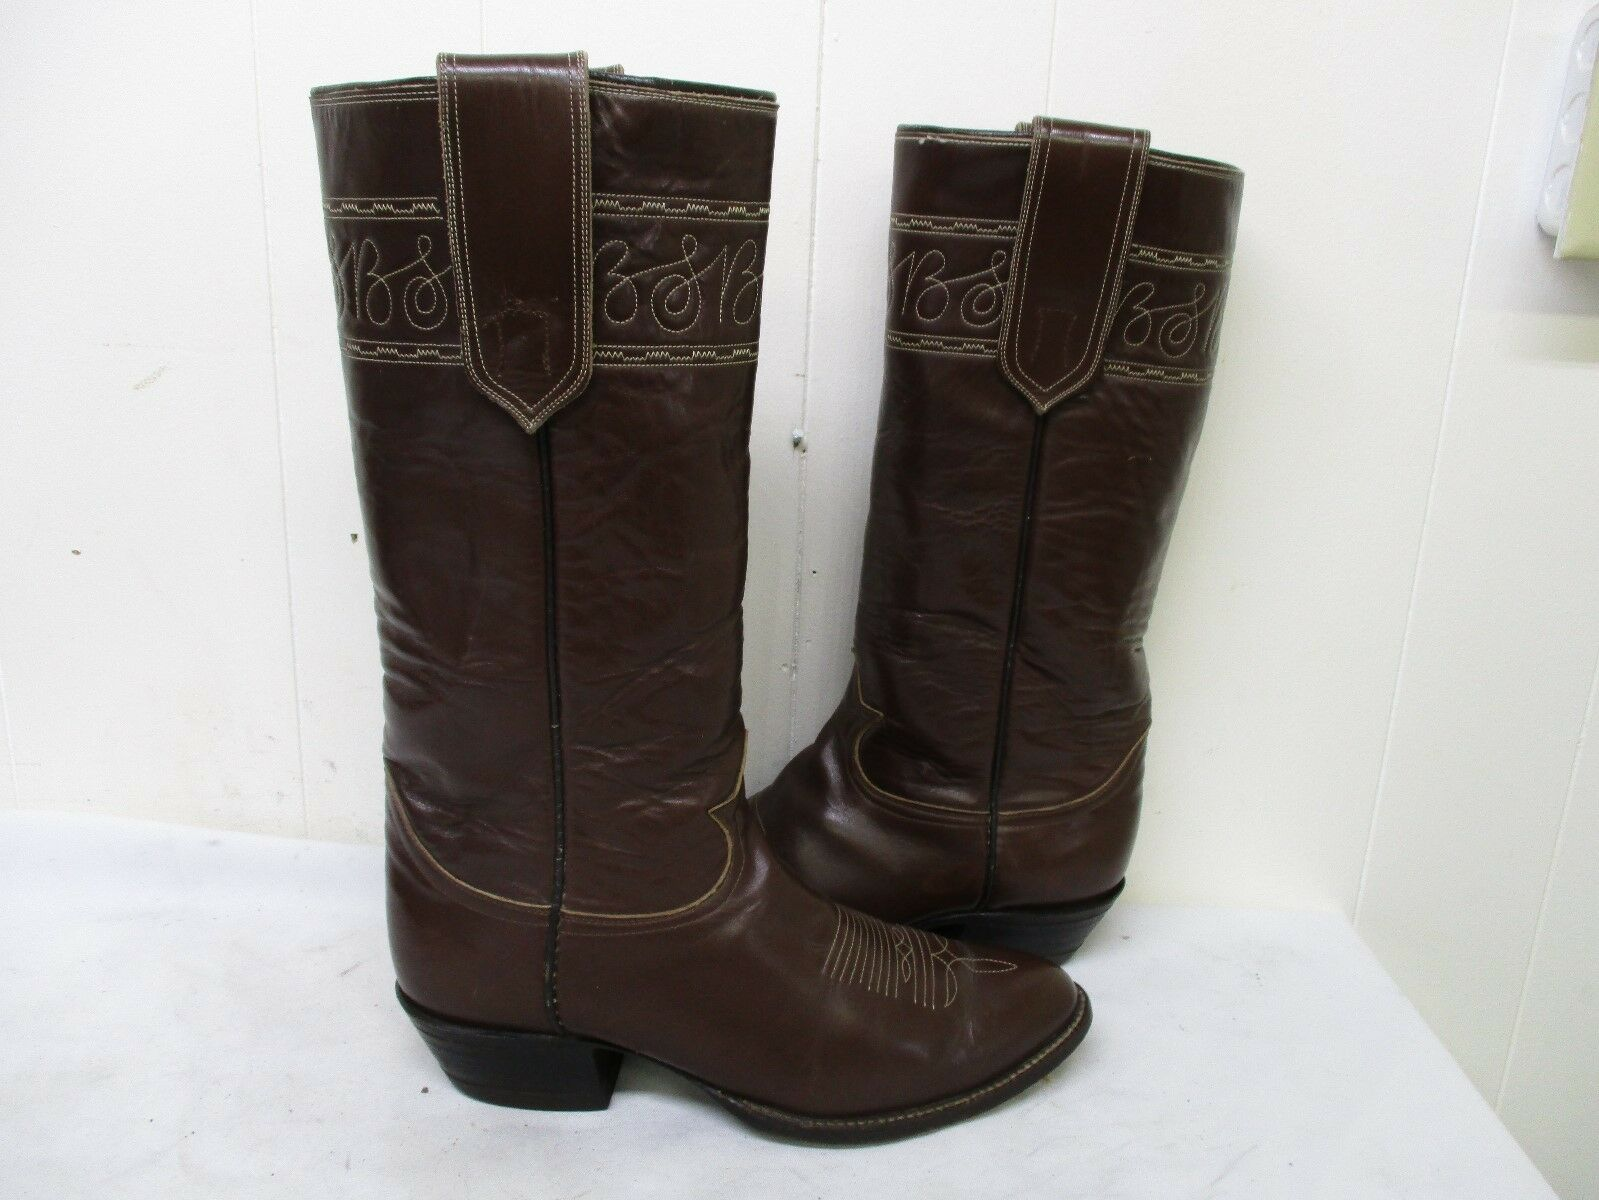 Tony Lama Brown Leather Tall Stovepipe Cowboy Boots Size 9 E Style 6431 USA